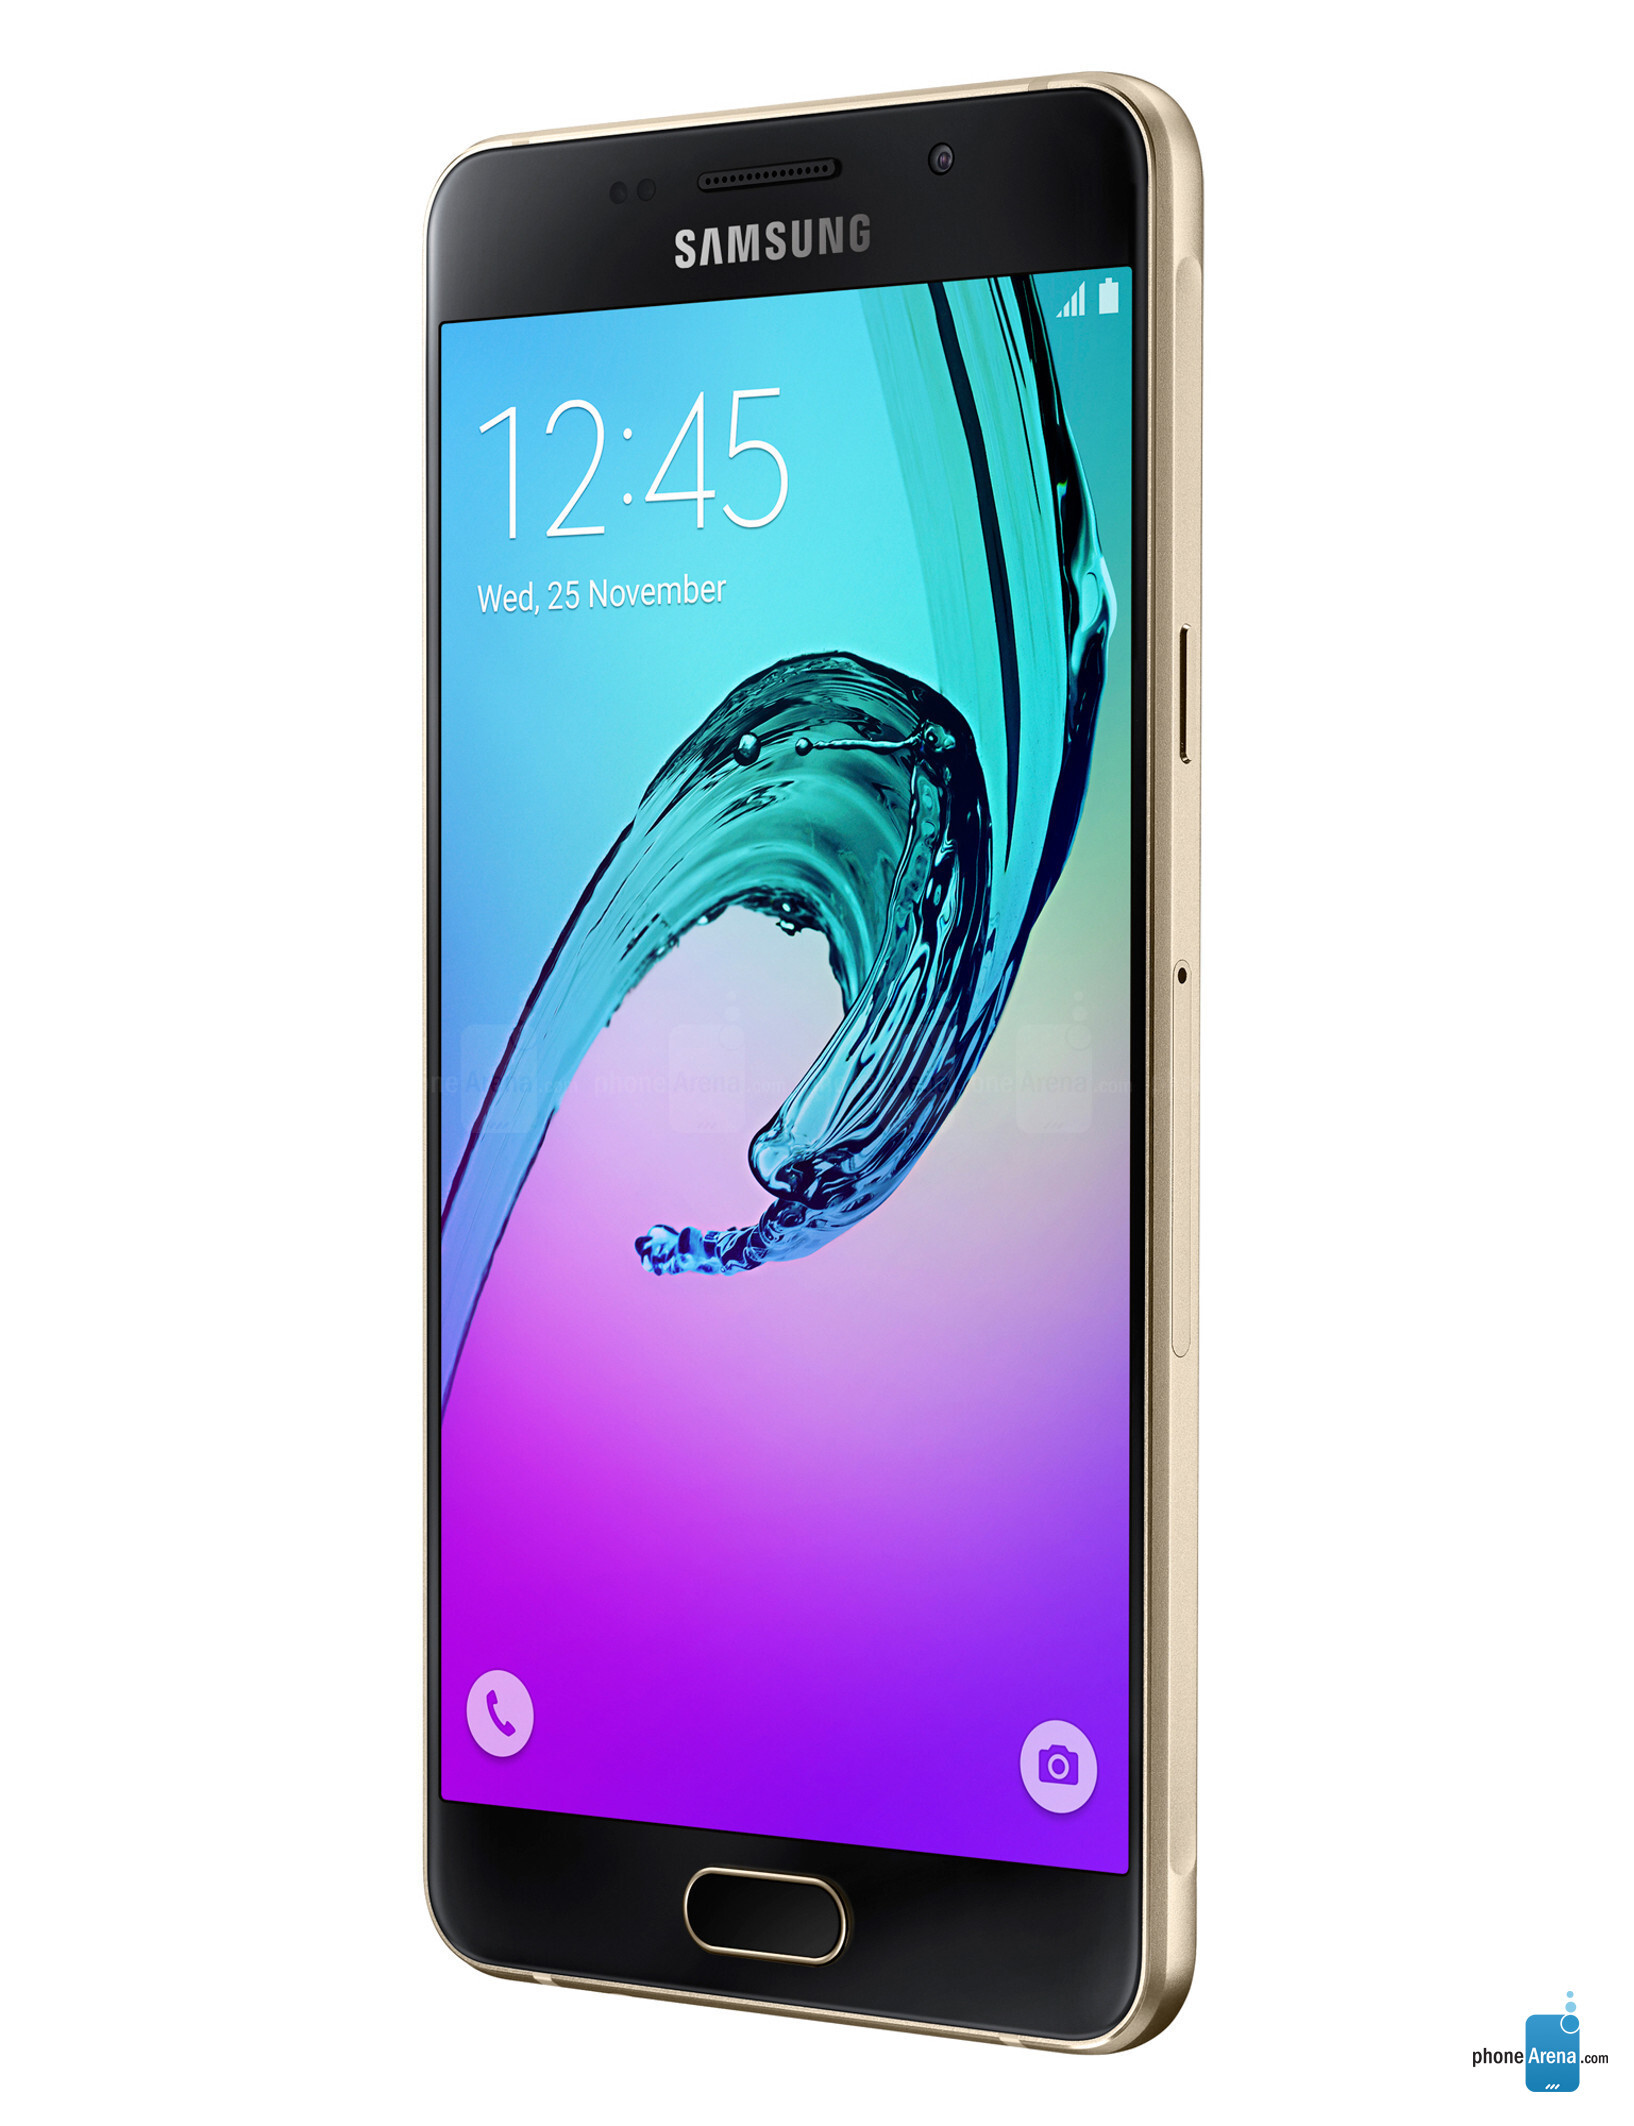 Phone Samsung Android Phones Latest samsung launches latest smartphone images guru galaxy a